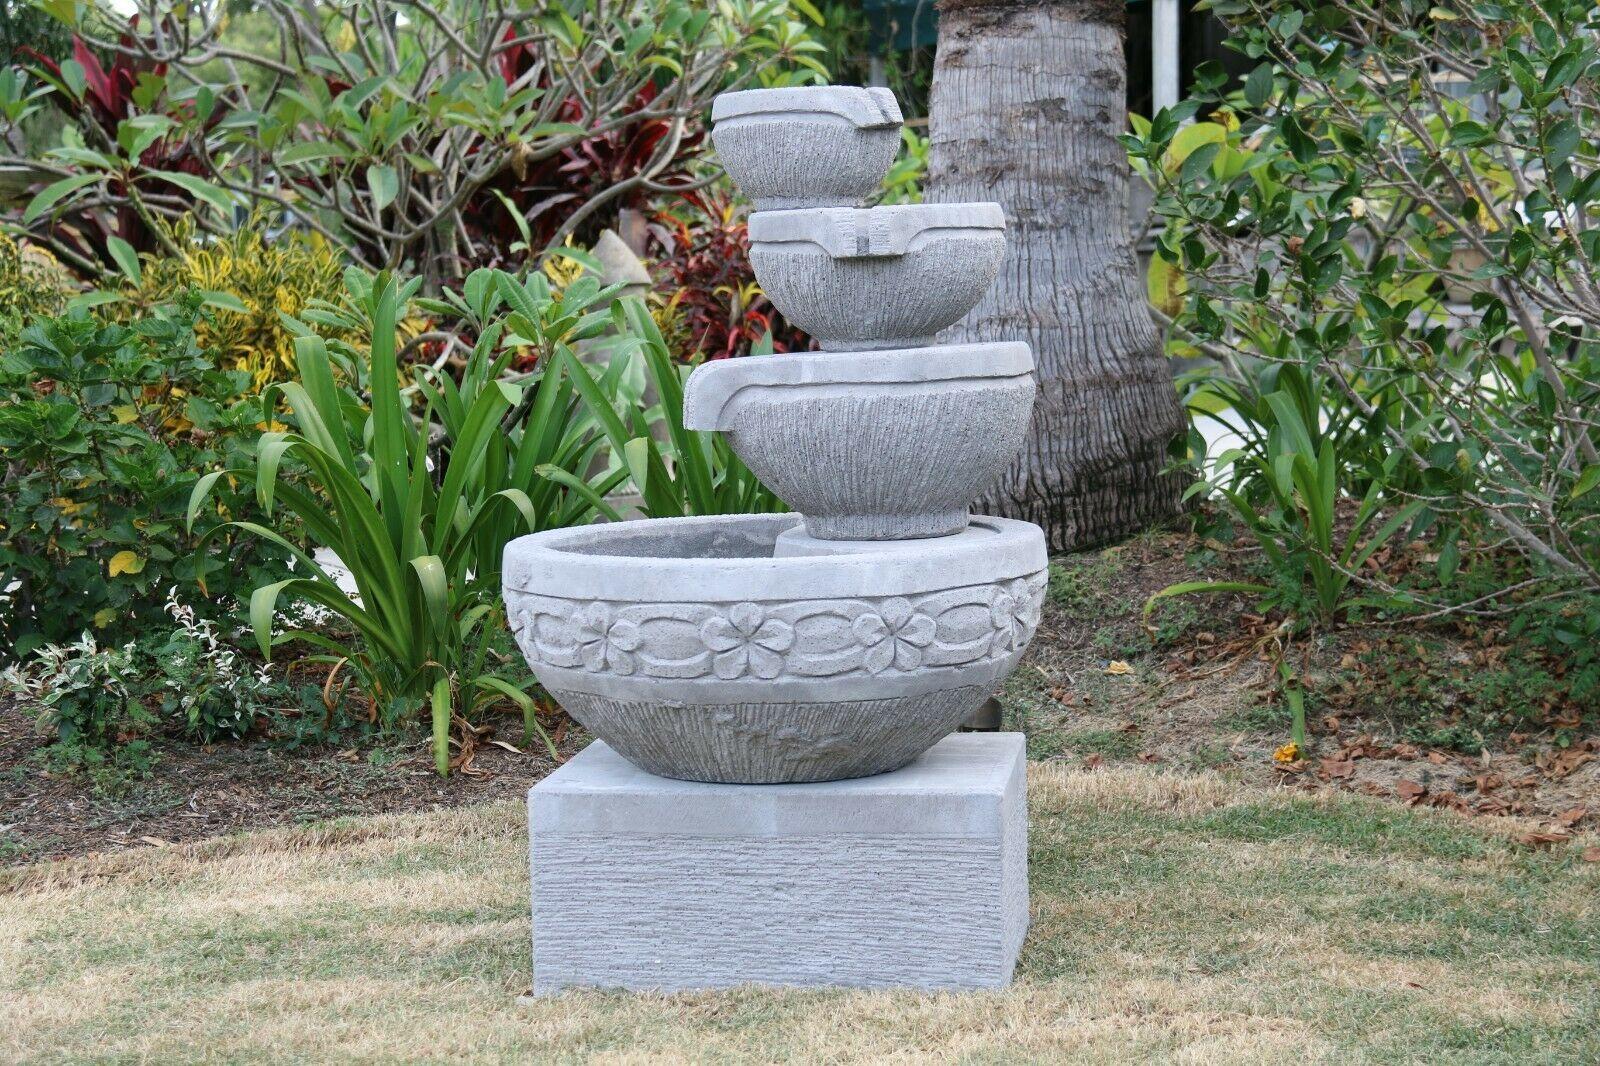 Bali Cascading Frangipani Style Water Feature - Balinese Garden Water Feature